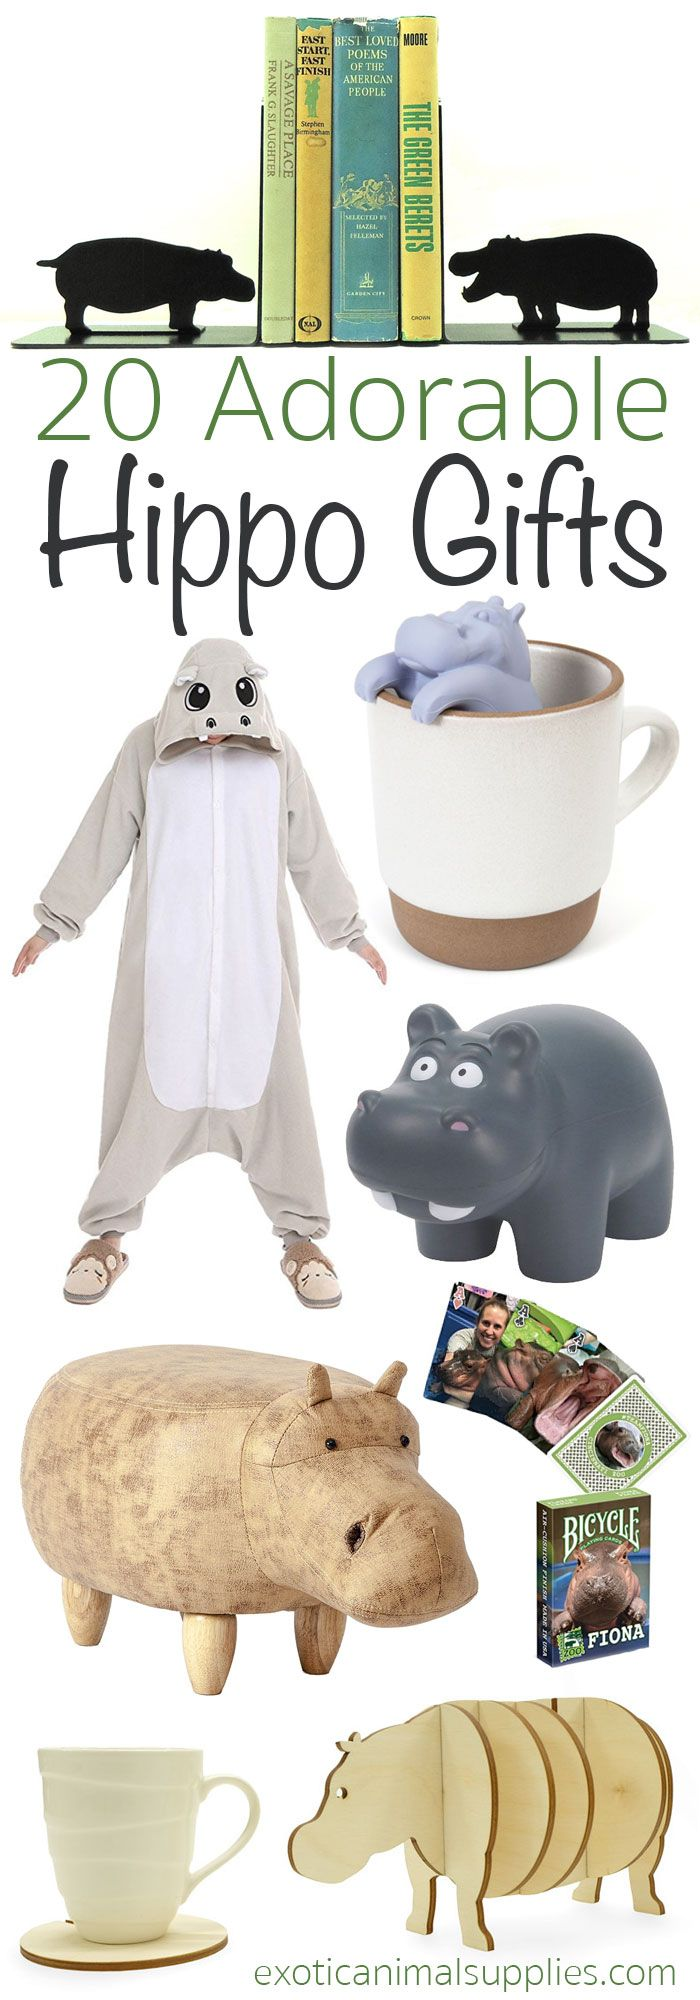 Look at these hippo gifts! Adorable, fun, and practical gifts for hippo lovers. Tiny hippopotamus toys, jewelry, and more. Perfect for Christmas, birthdays, and anniversaries. I love #12!